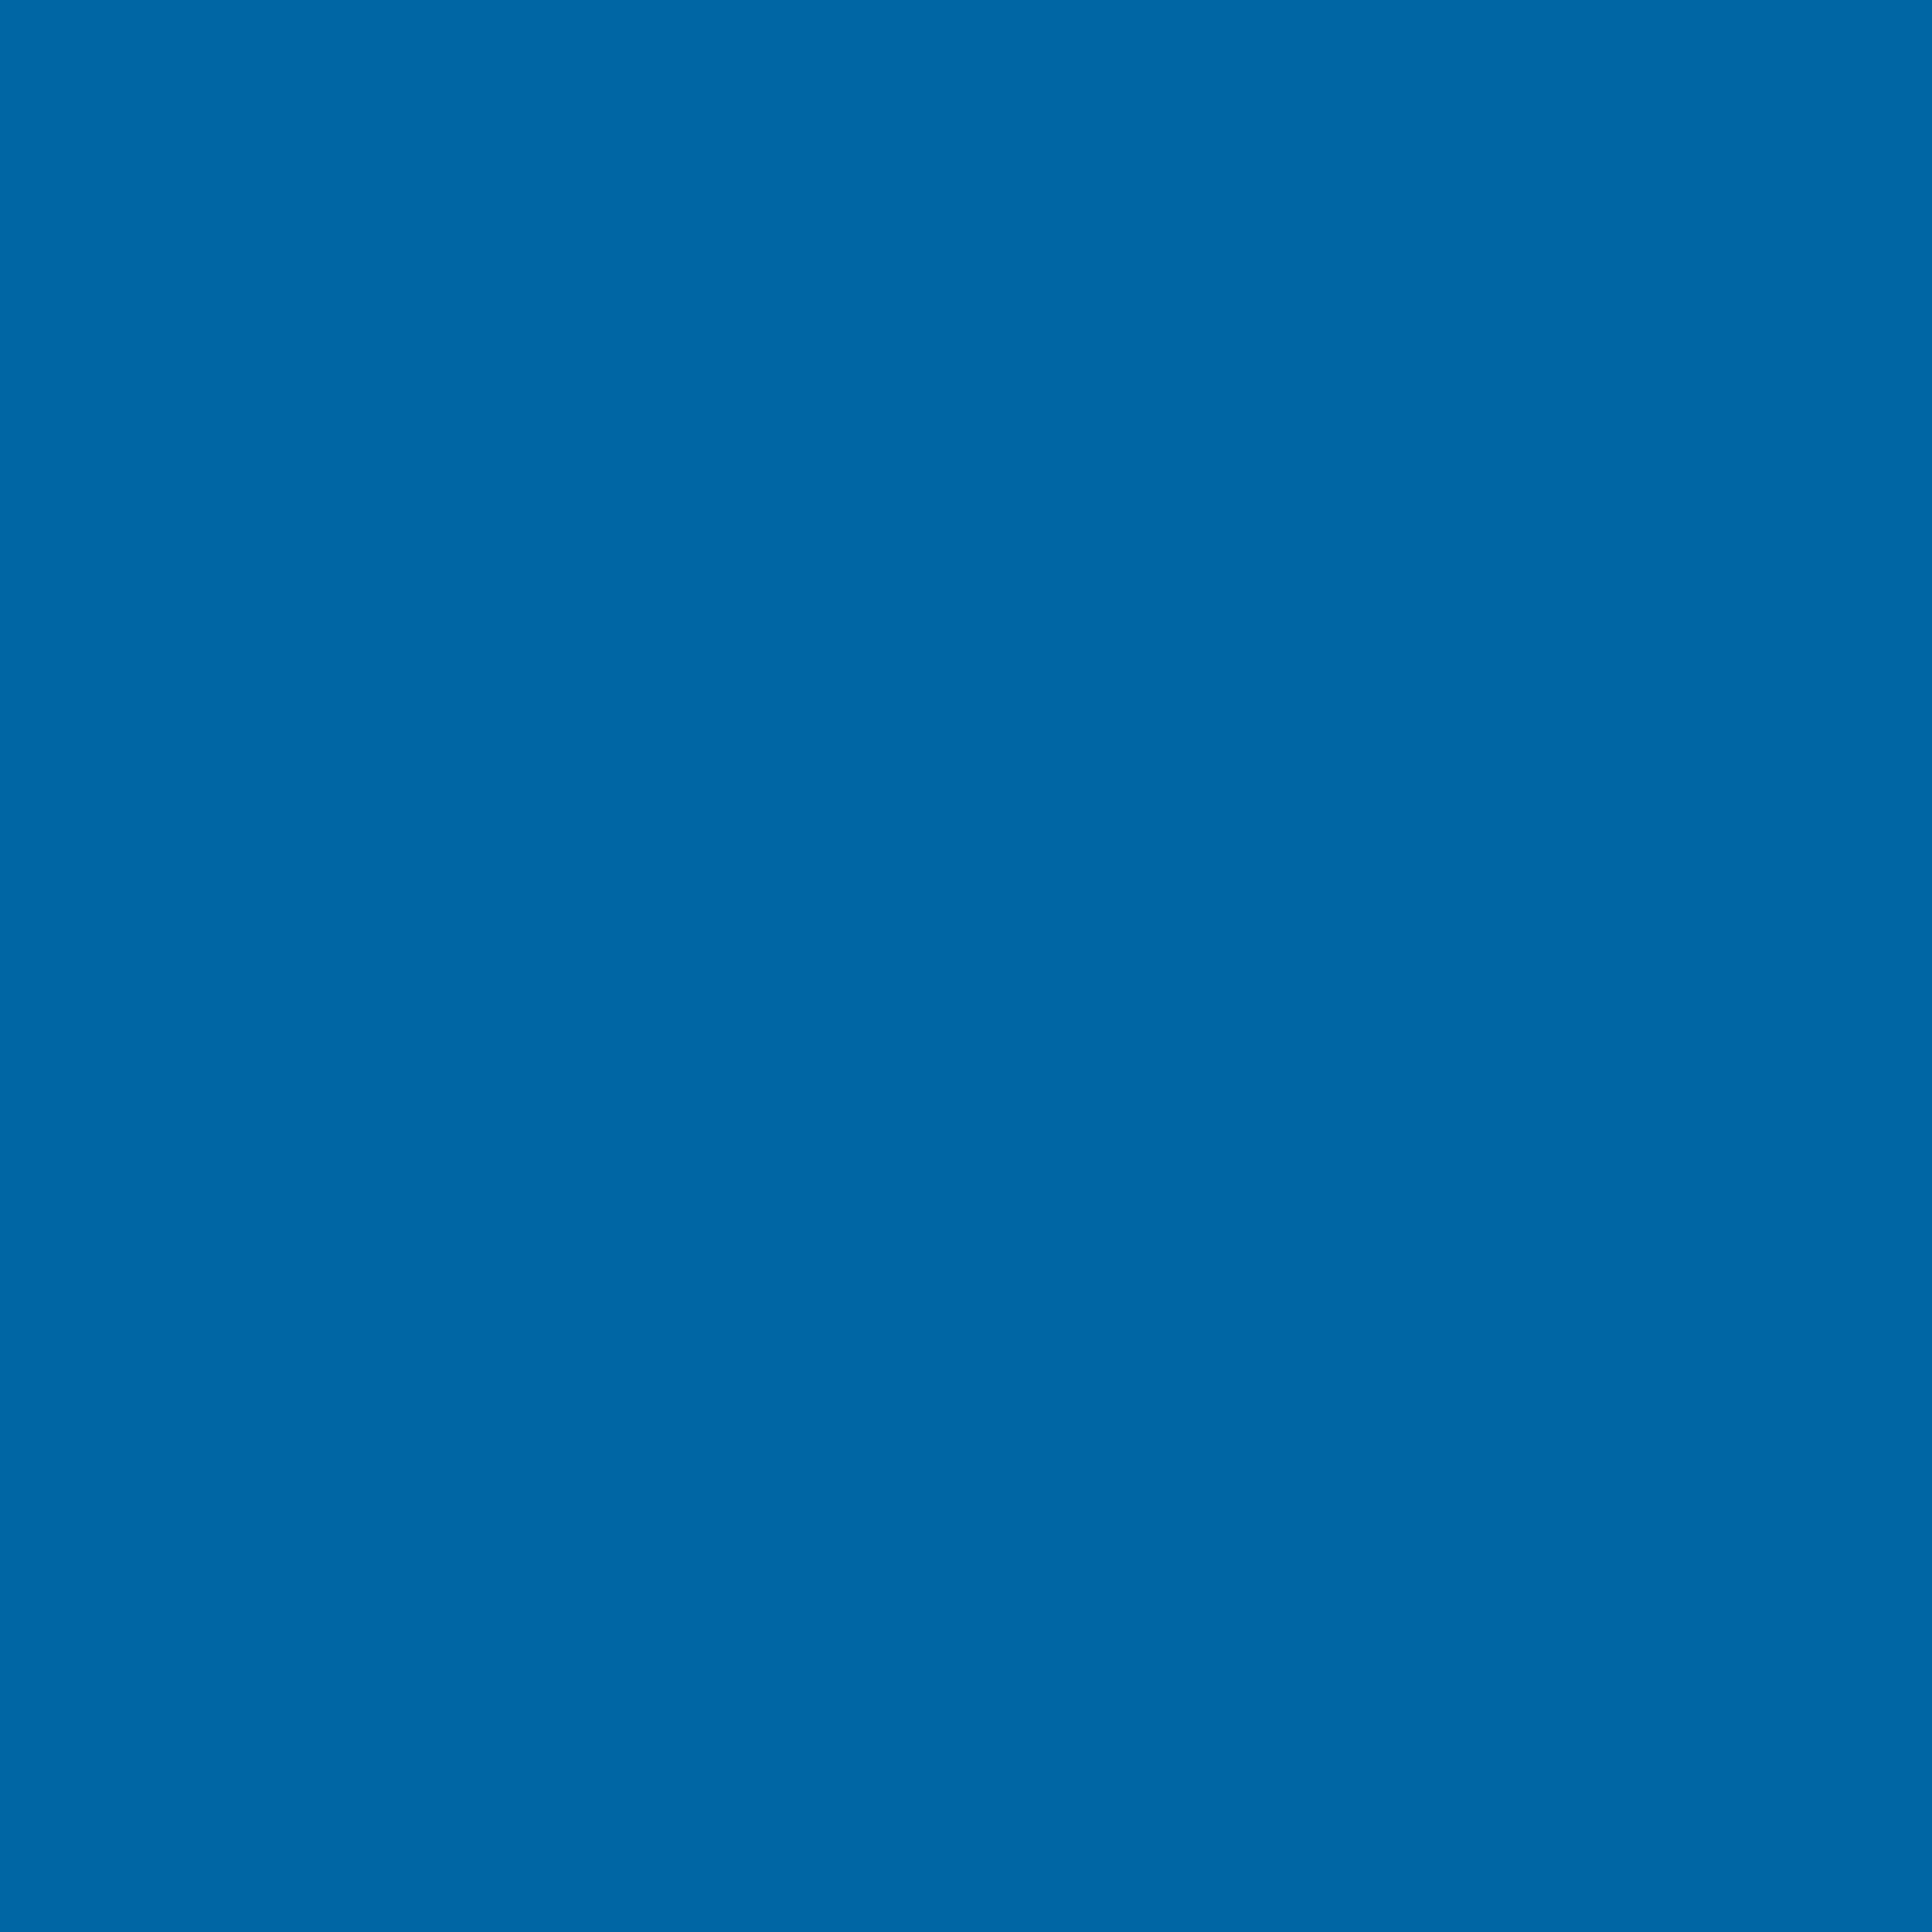 3600x3600 Sapphire Blue Solid Color Background